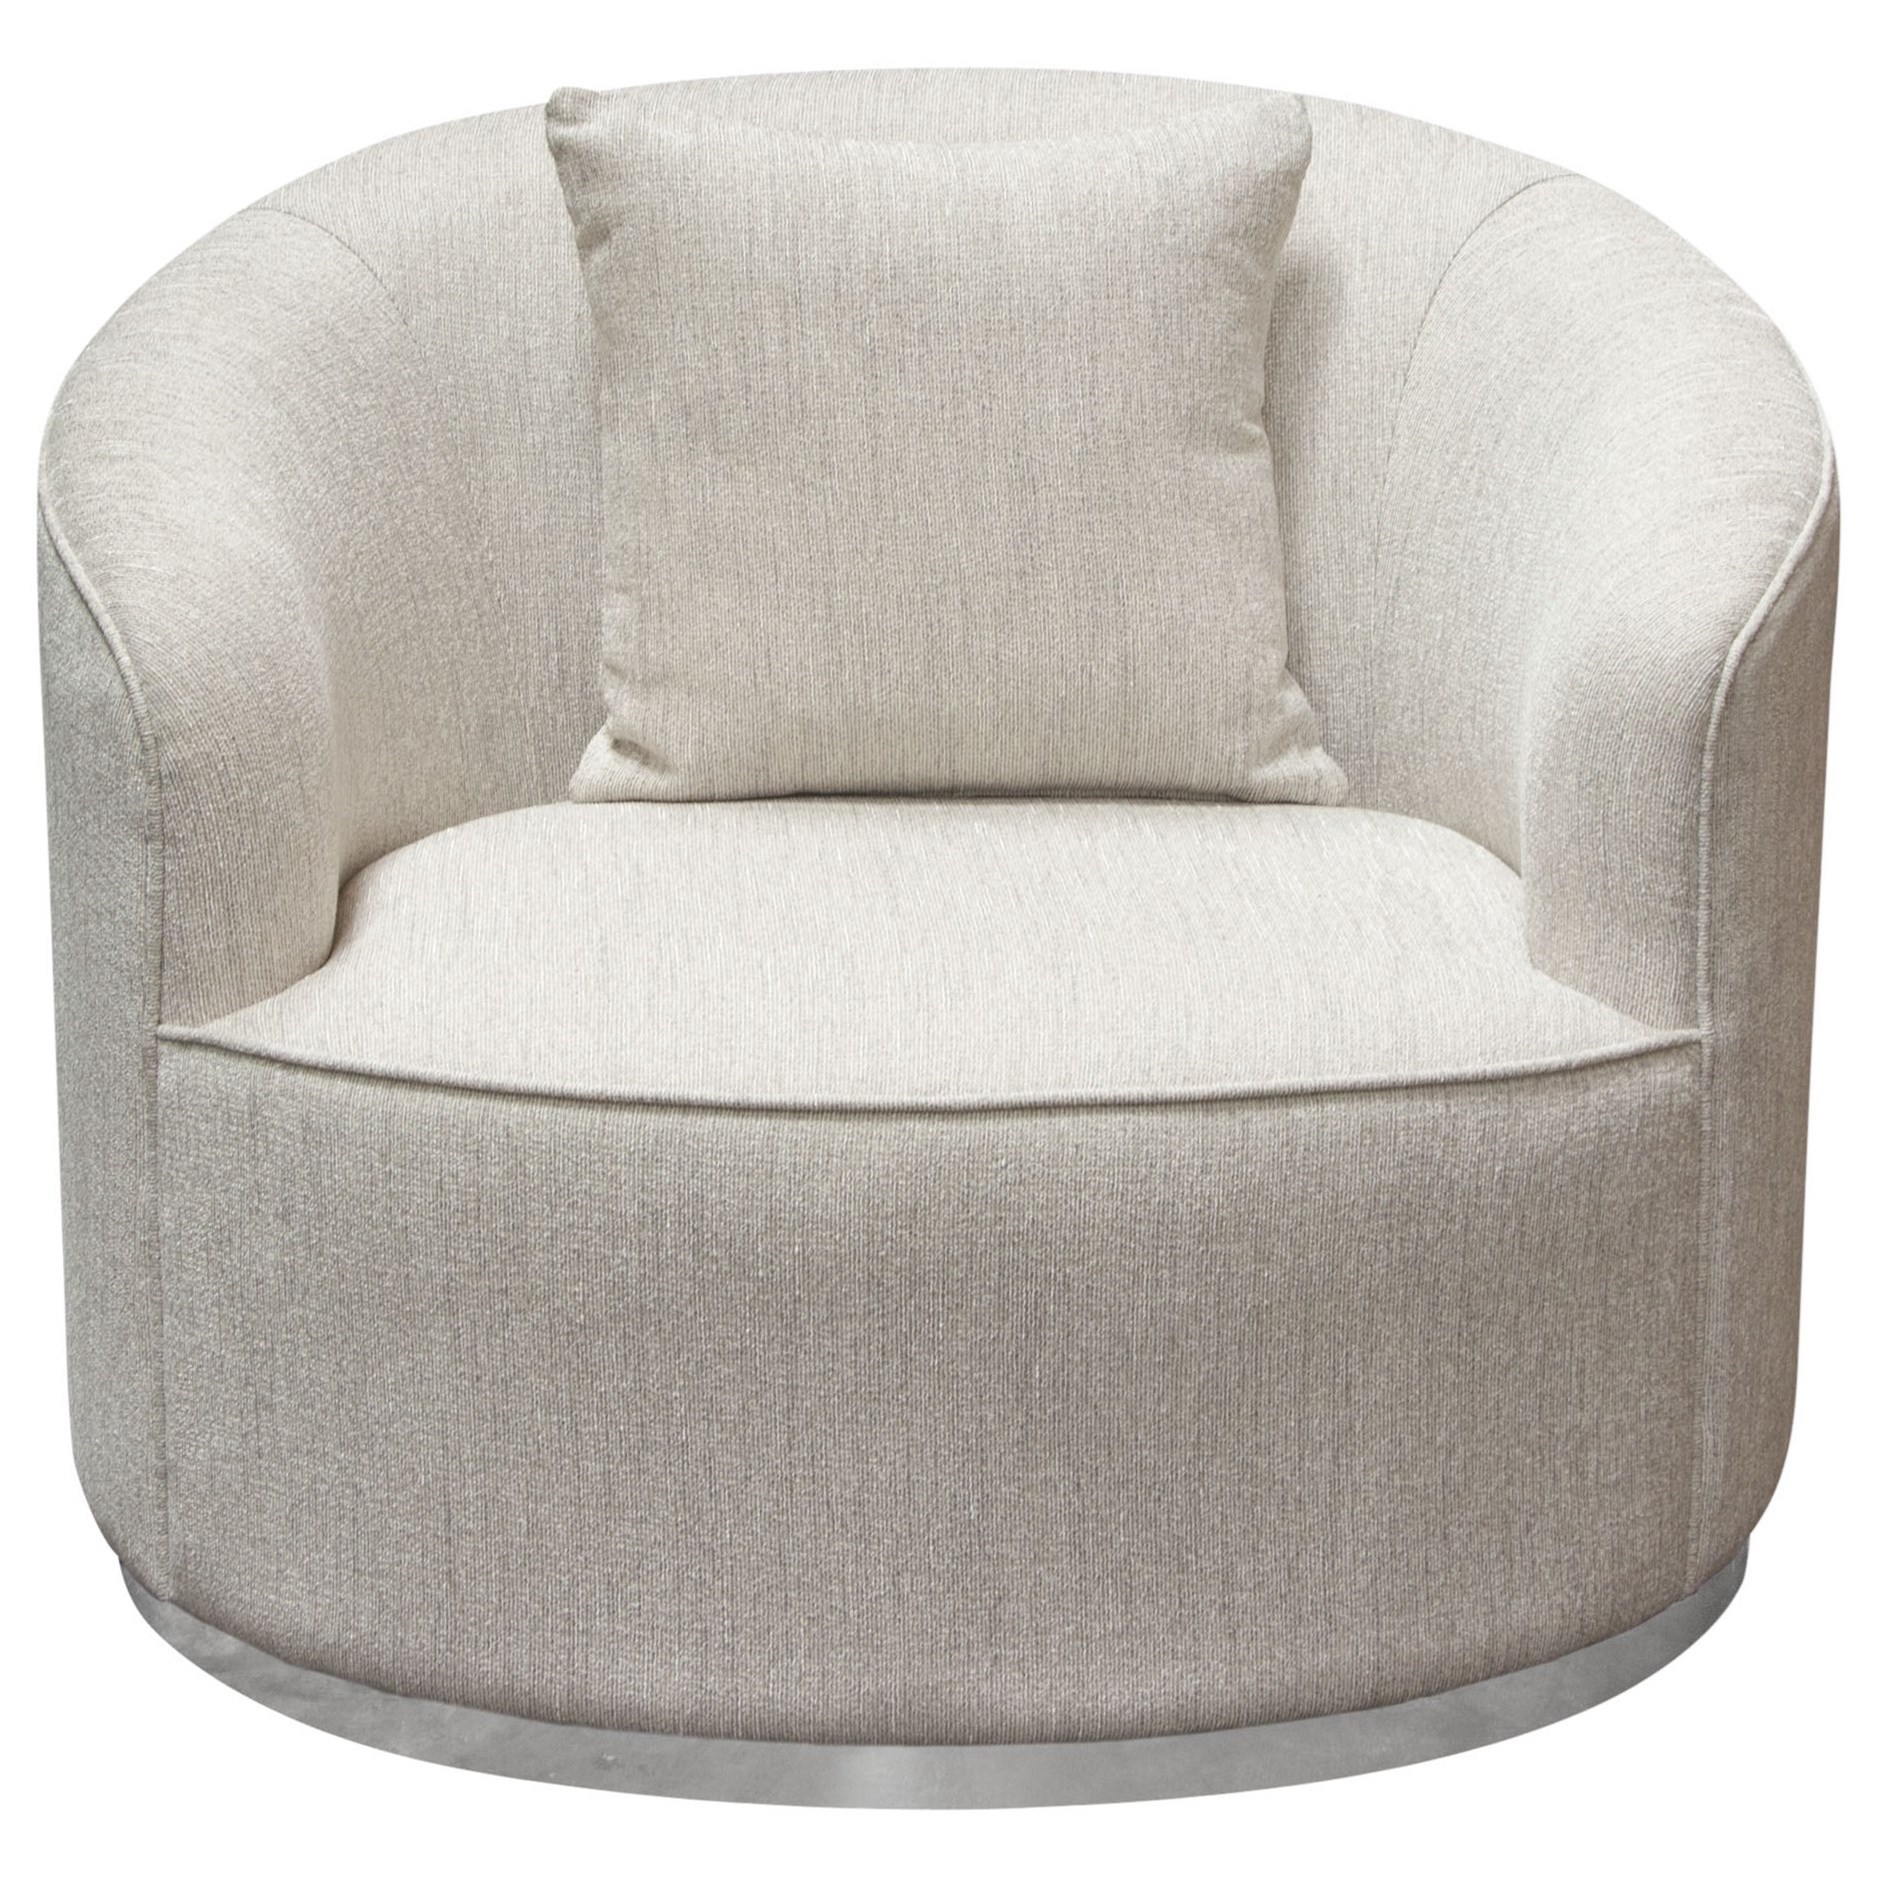 Raven Chair with Accent Trim by Diamond Sofa at Red Knot